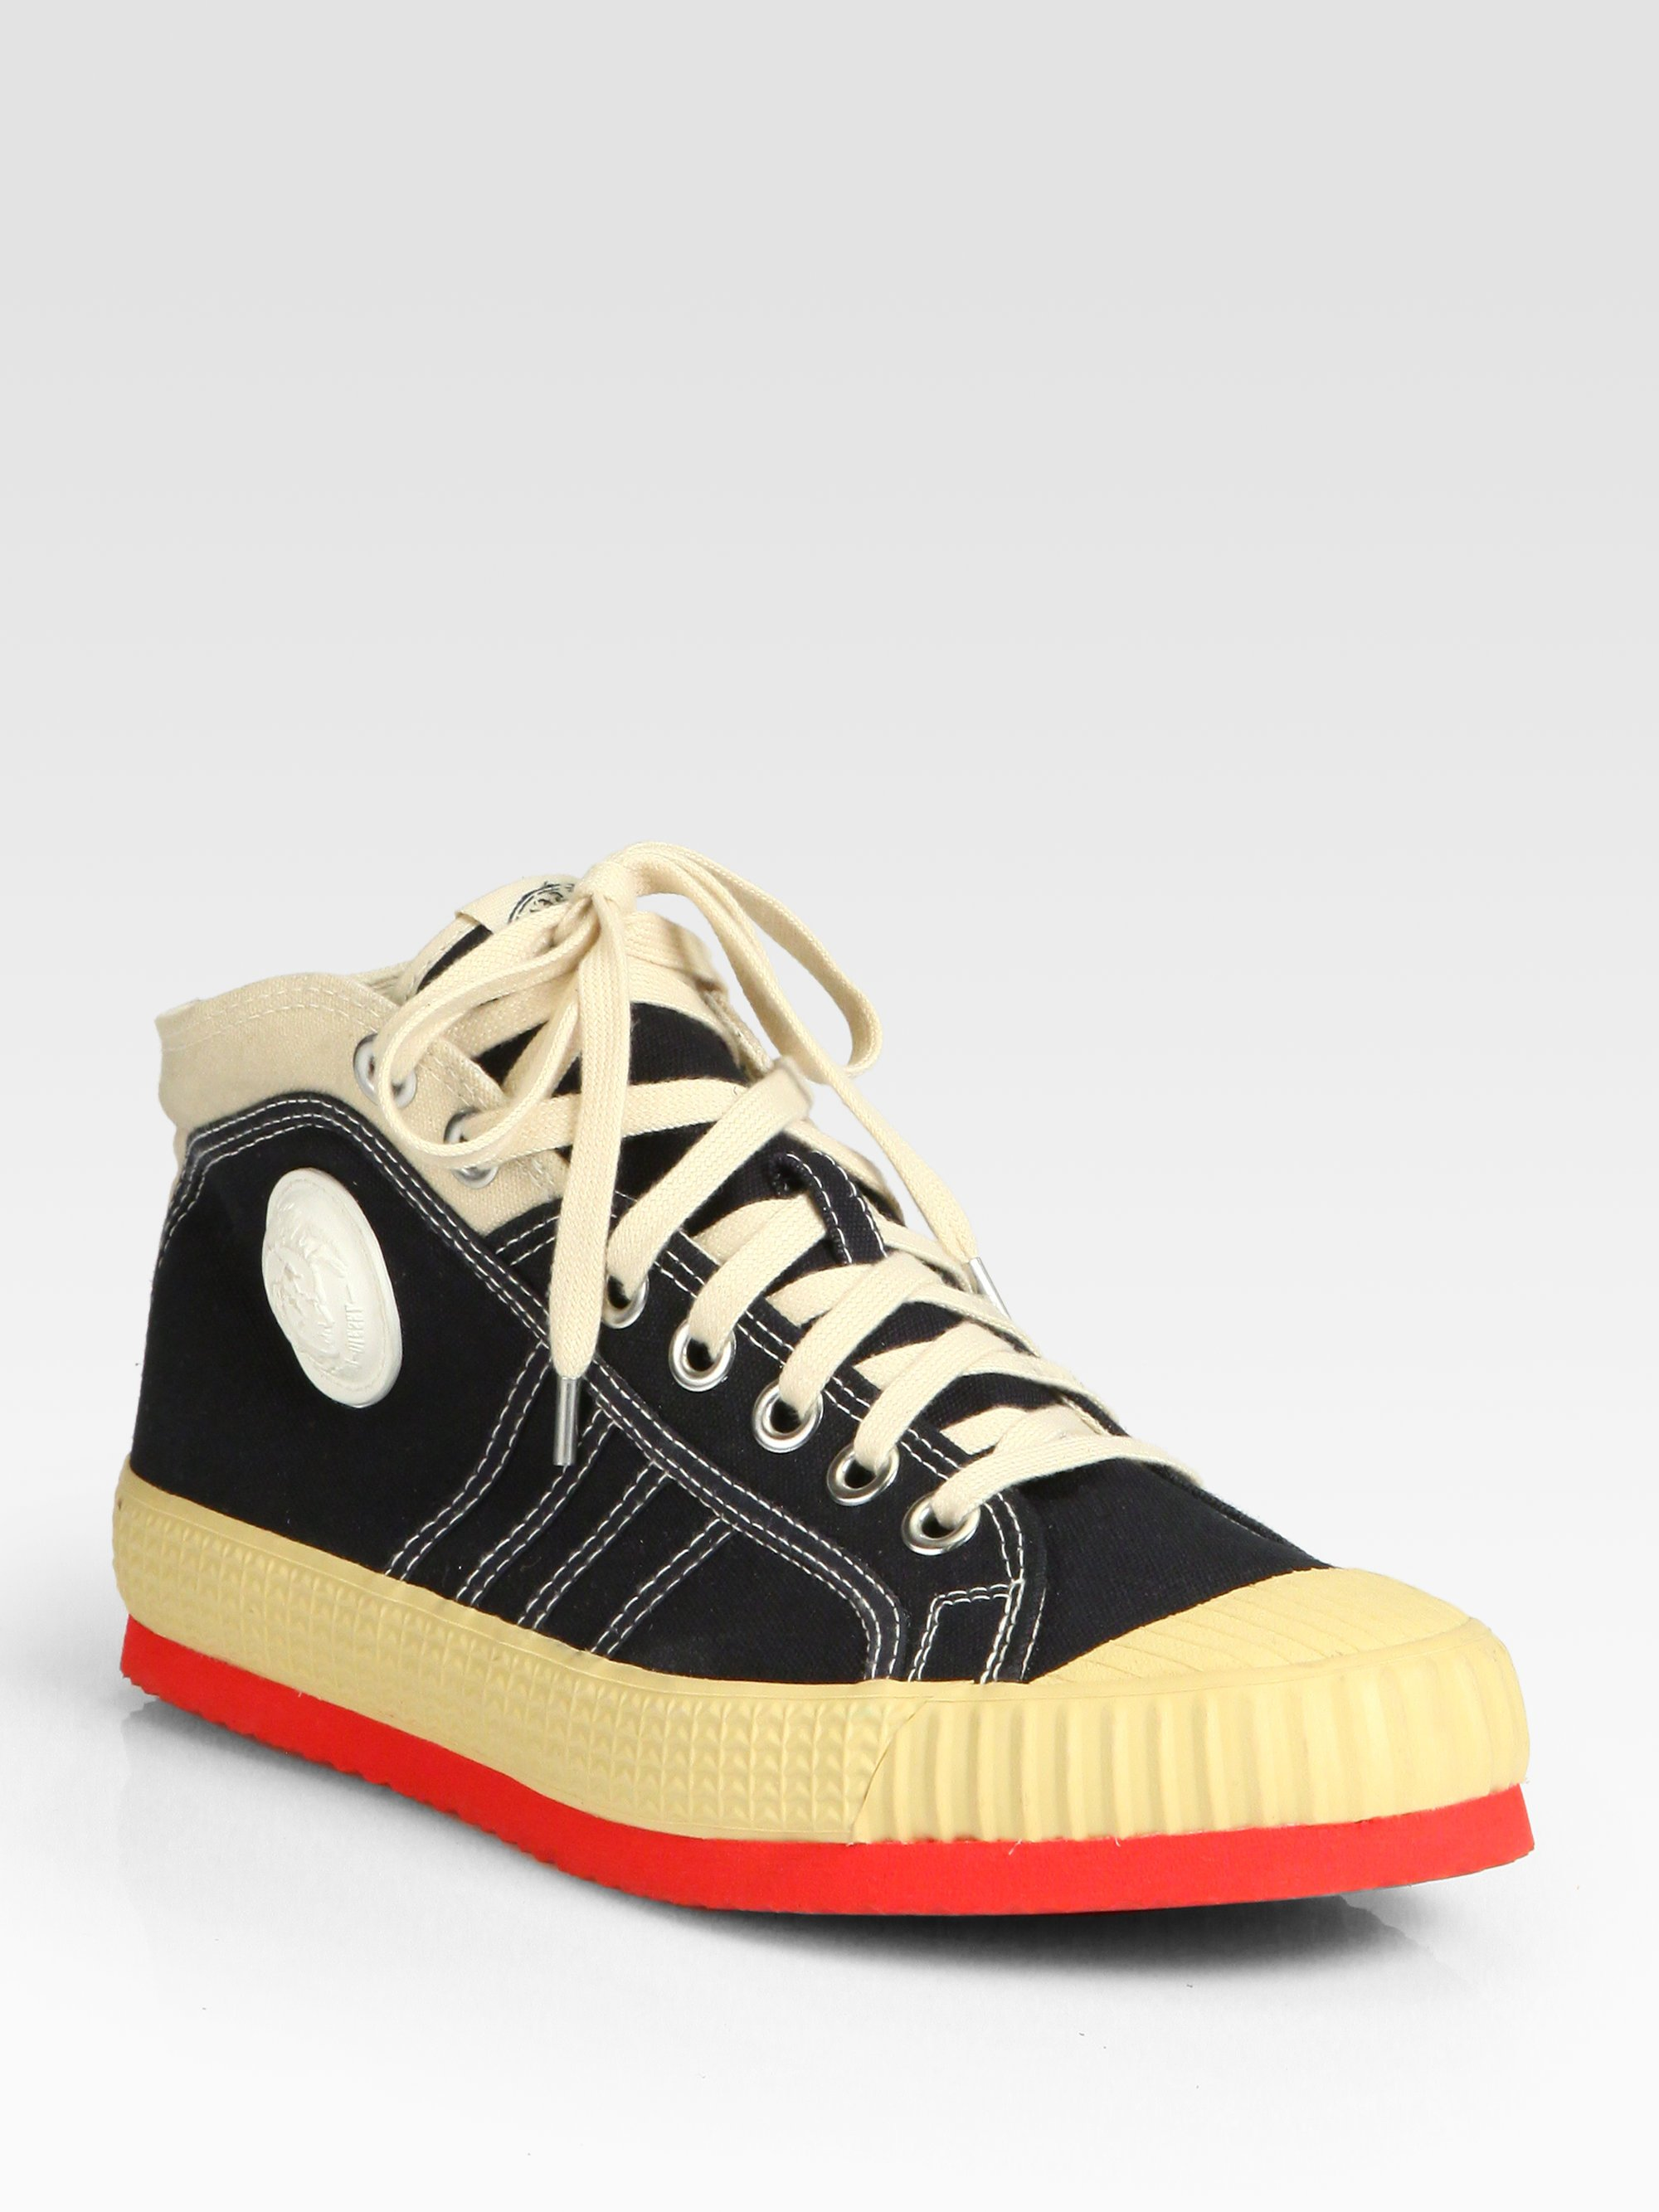 Rubber Rings For Men >> Lyst - Diesel Yuk Anniversary Sneakers in Black for Men